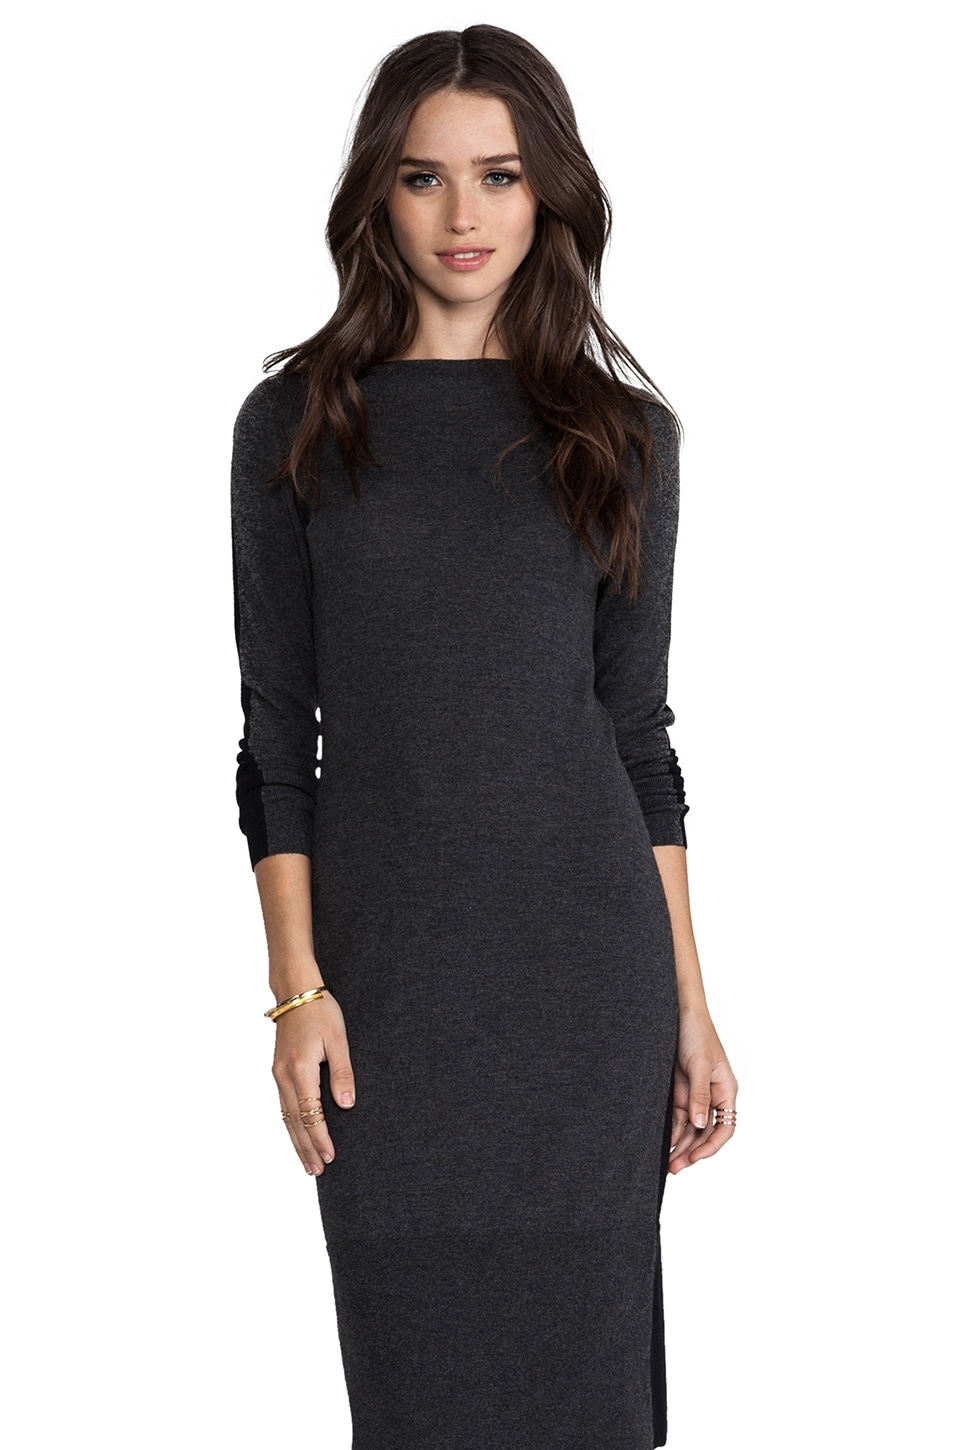 Autumn Cashmere Tissue Cashmere Color Block Boatneck Dress in Charcoal/Black